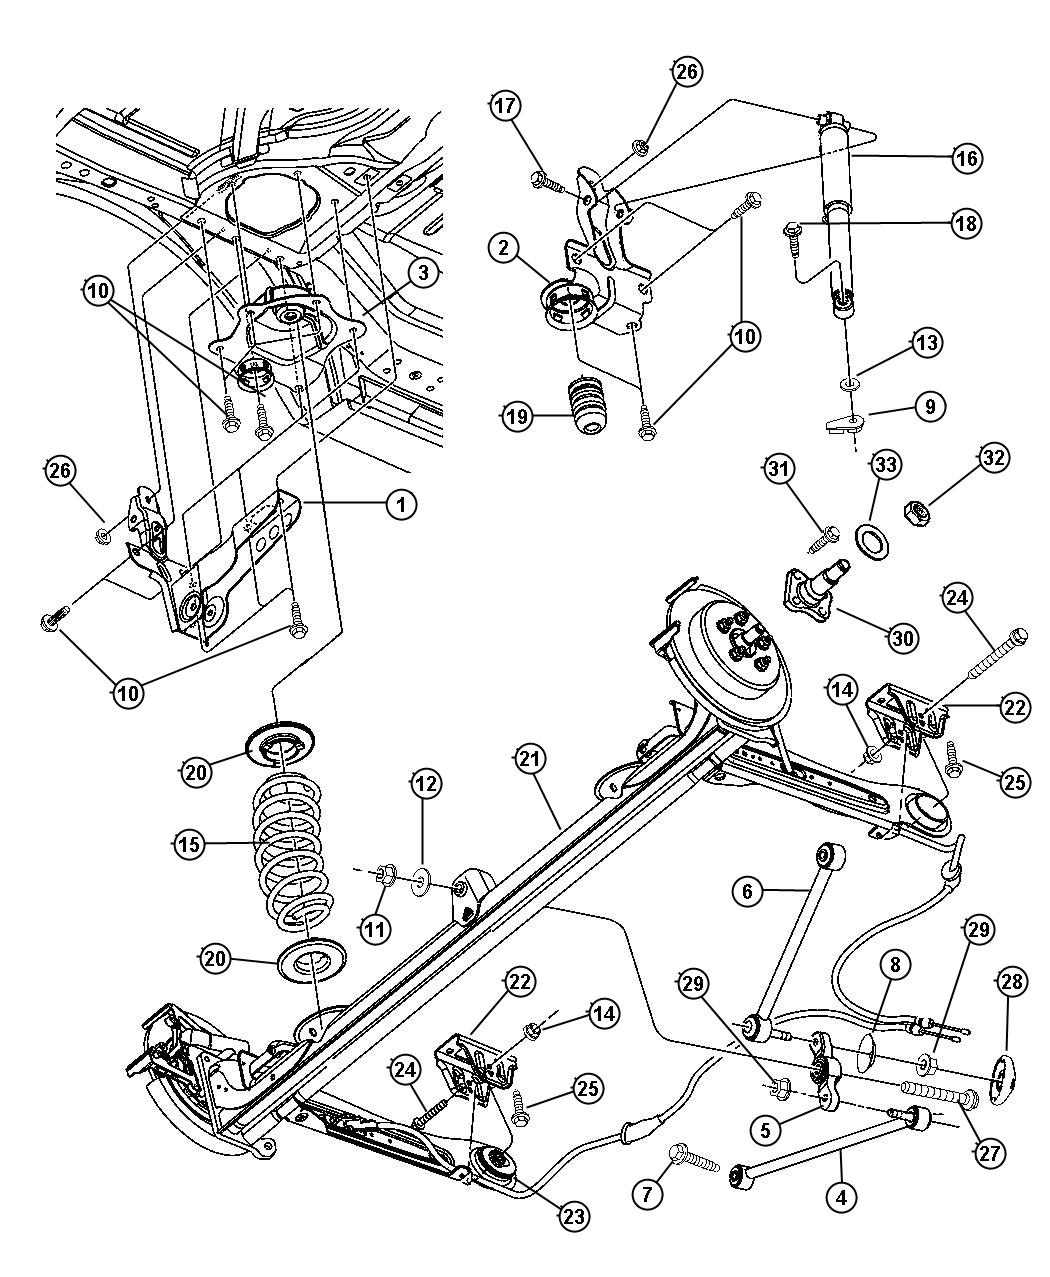 Chevy 4 3 5 7l Vortec Engine Wont Start Unless Spray Starting Fluid Down Throttle Body  1472 furthermore Pontiac G6 Engine Diagrams moreover 2000 Pontiac Sunfire Engine Diagram moreover 2004 Pontiac Grand Prix Engine Diagram also 1996 Jeep Grand Cherokee Evap Solenoid Location. on 2001 pontiac grand prix egr valve location